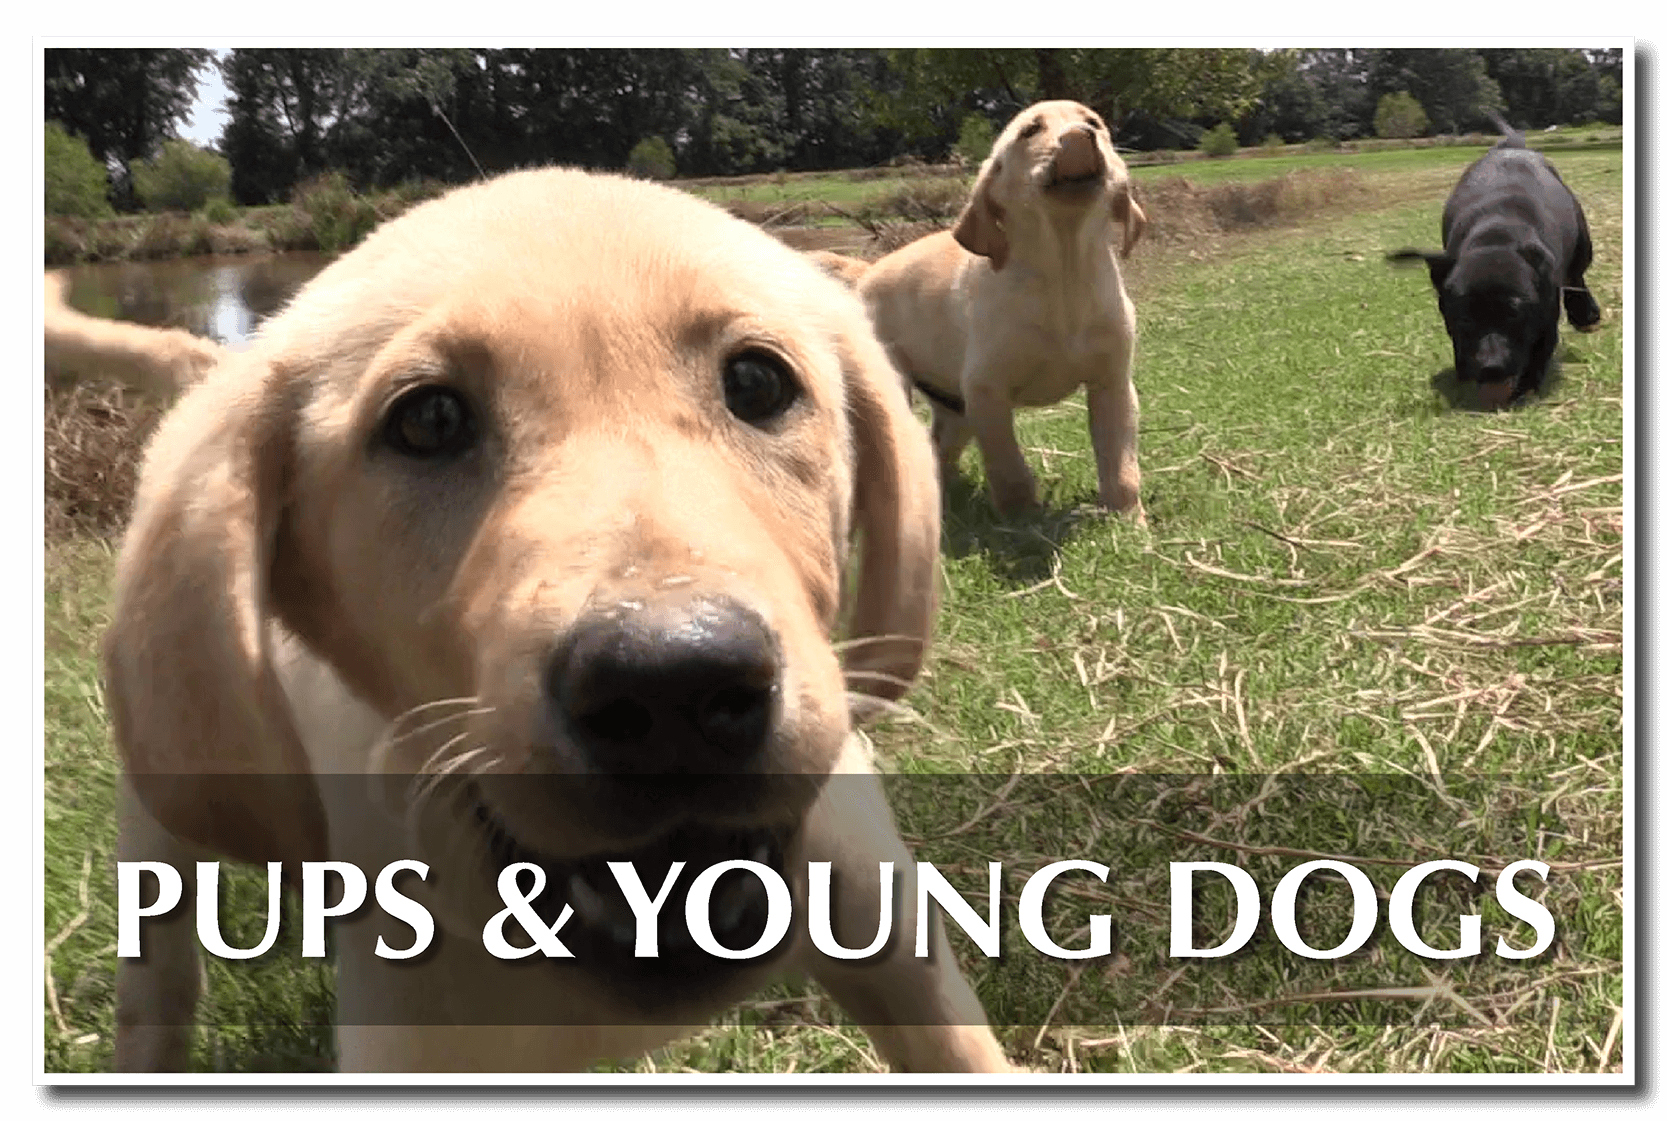 Puppies and Young Dogs